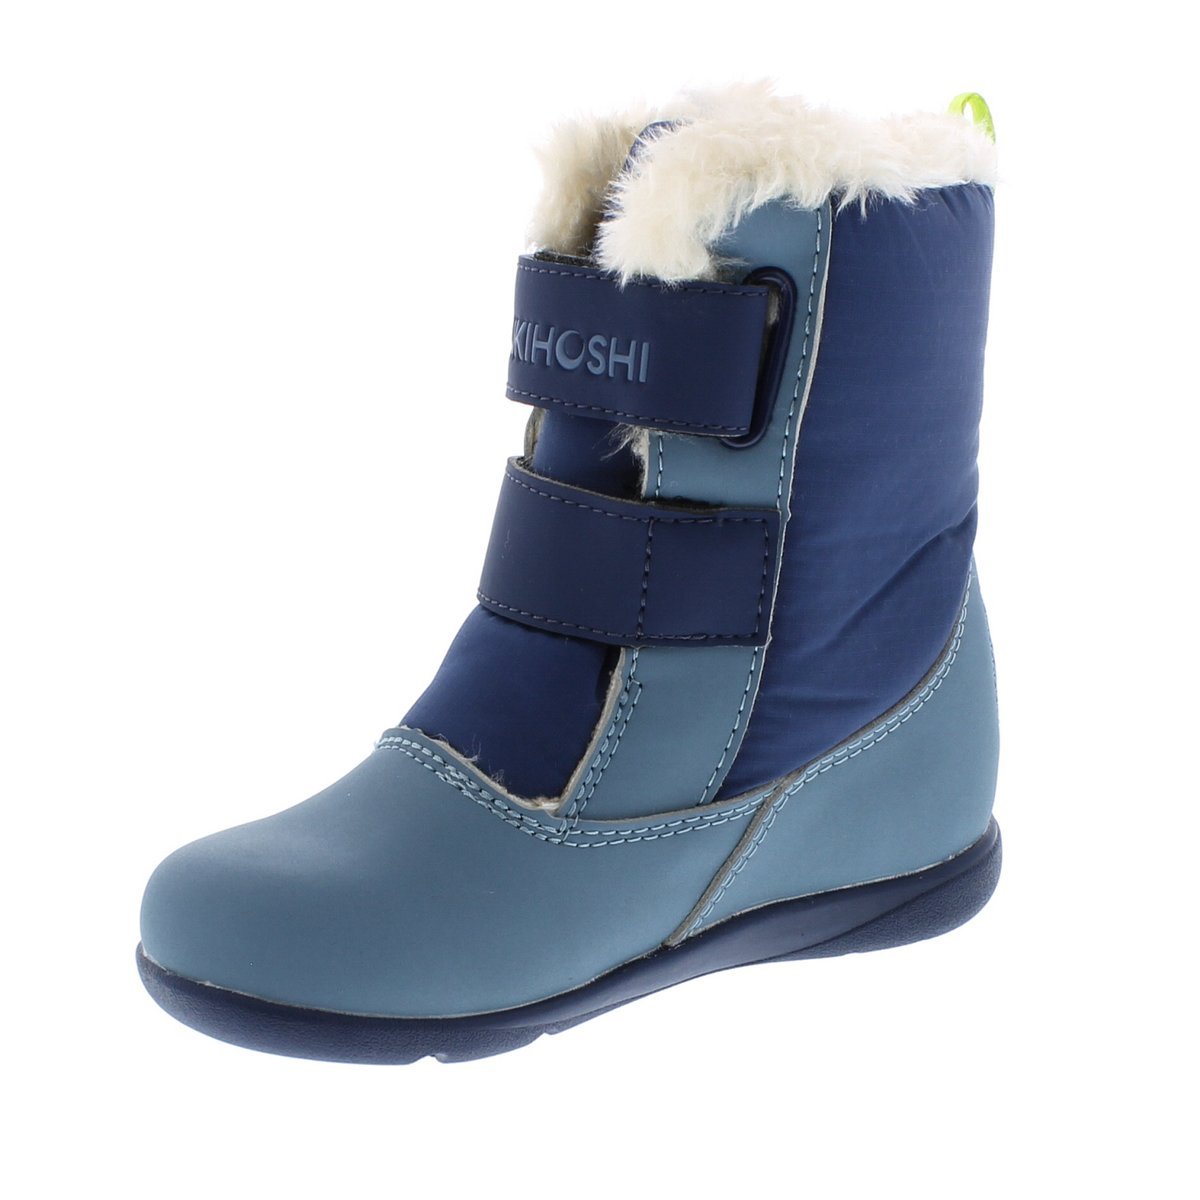 Child Tsukihoshi Teddy Boot in Sea/Lime from the front view